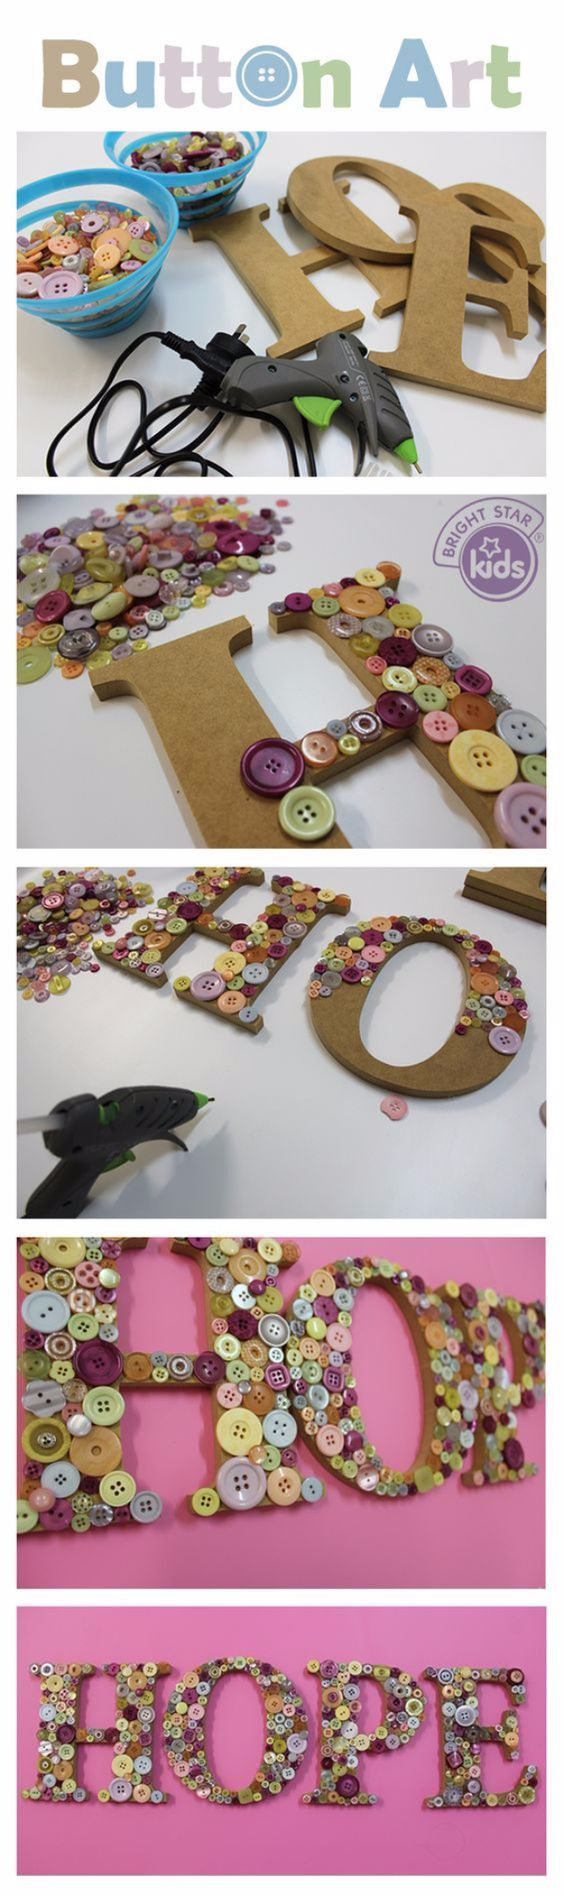 DIY Projects and Crafts Made With Buttons – Button Art – Easy and Quick Projects…